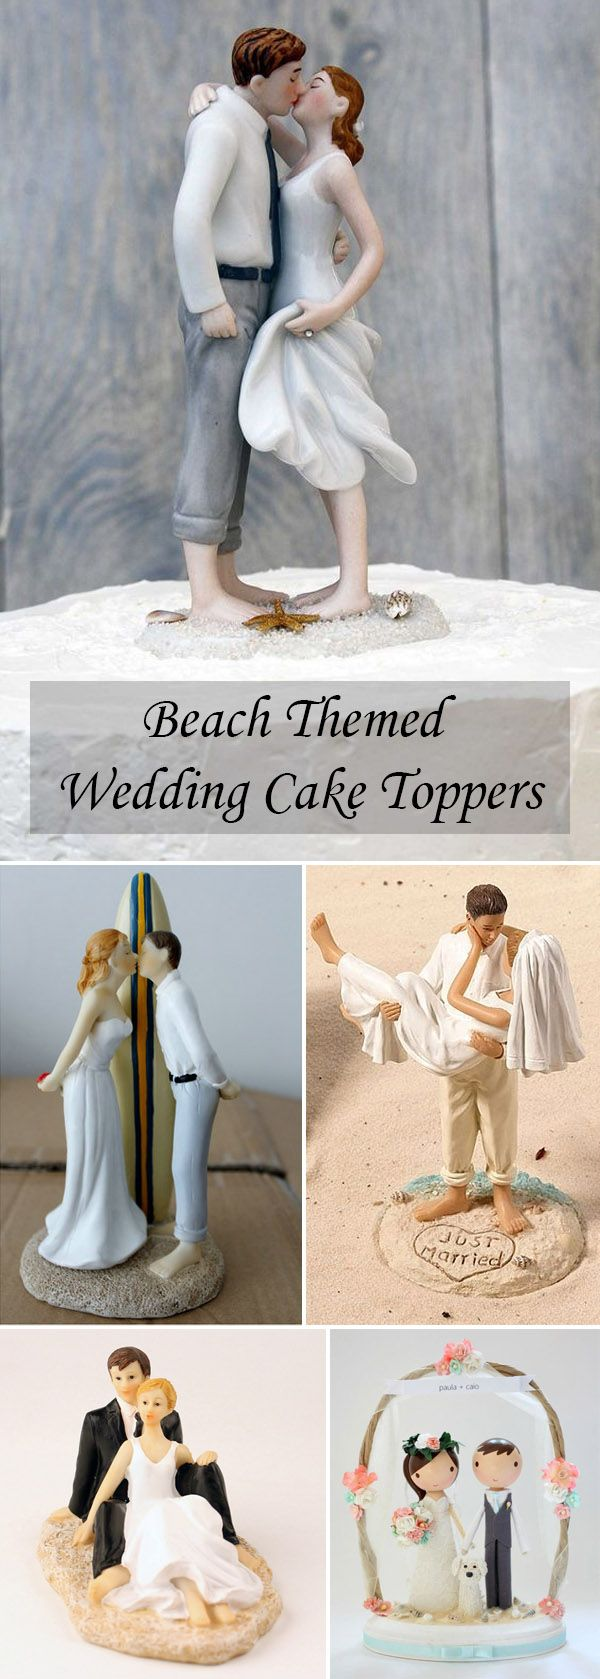 Different And Funny Wedding Gifts Cake Toppers Beach Themed